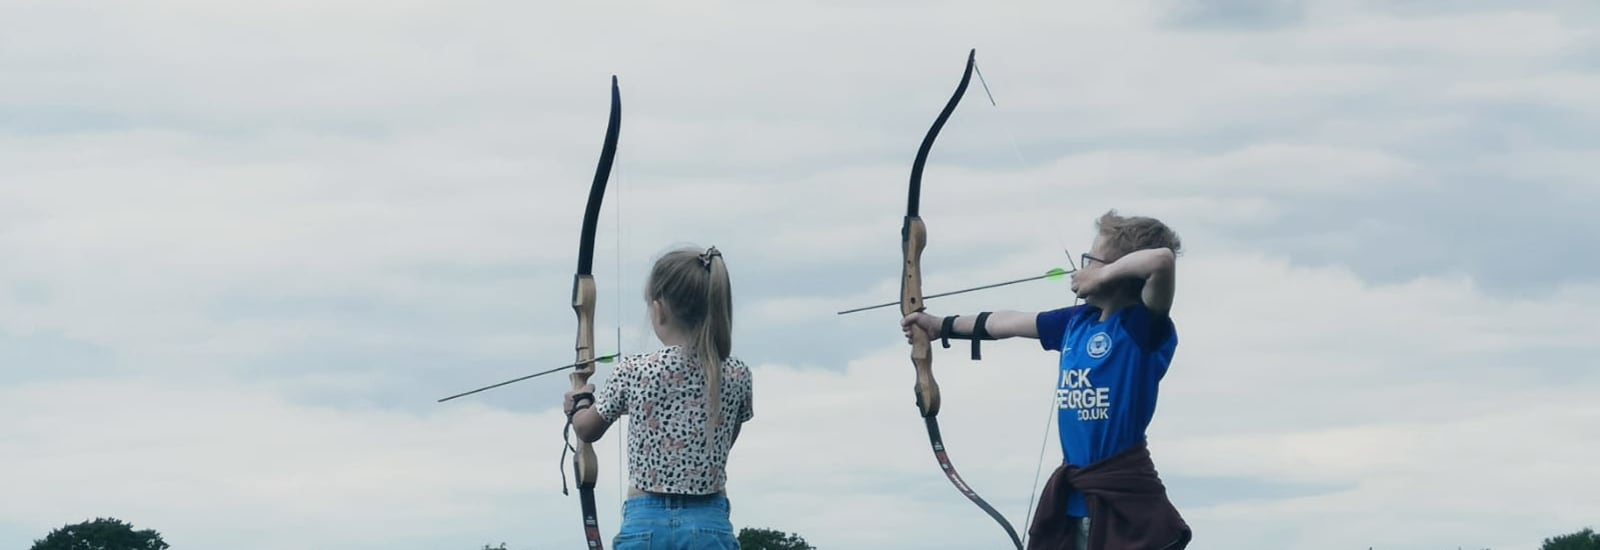 two children enjoying archery on a field